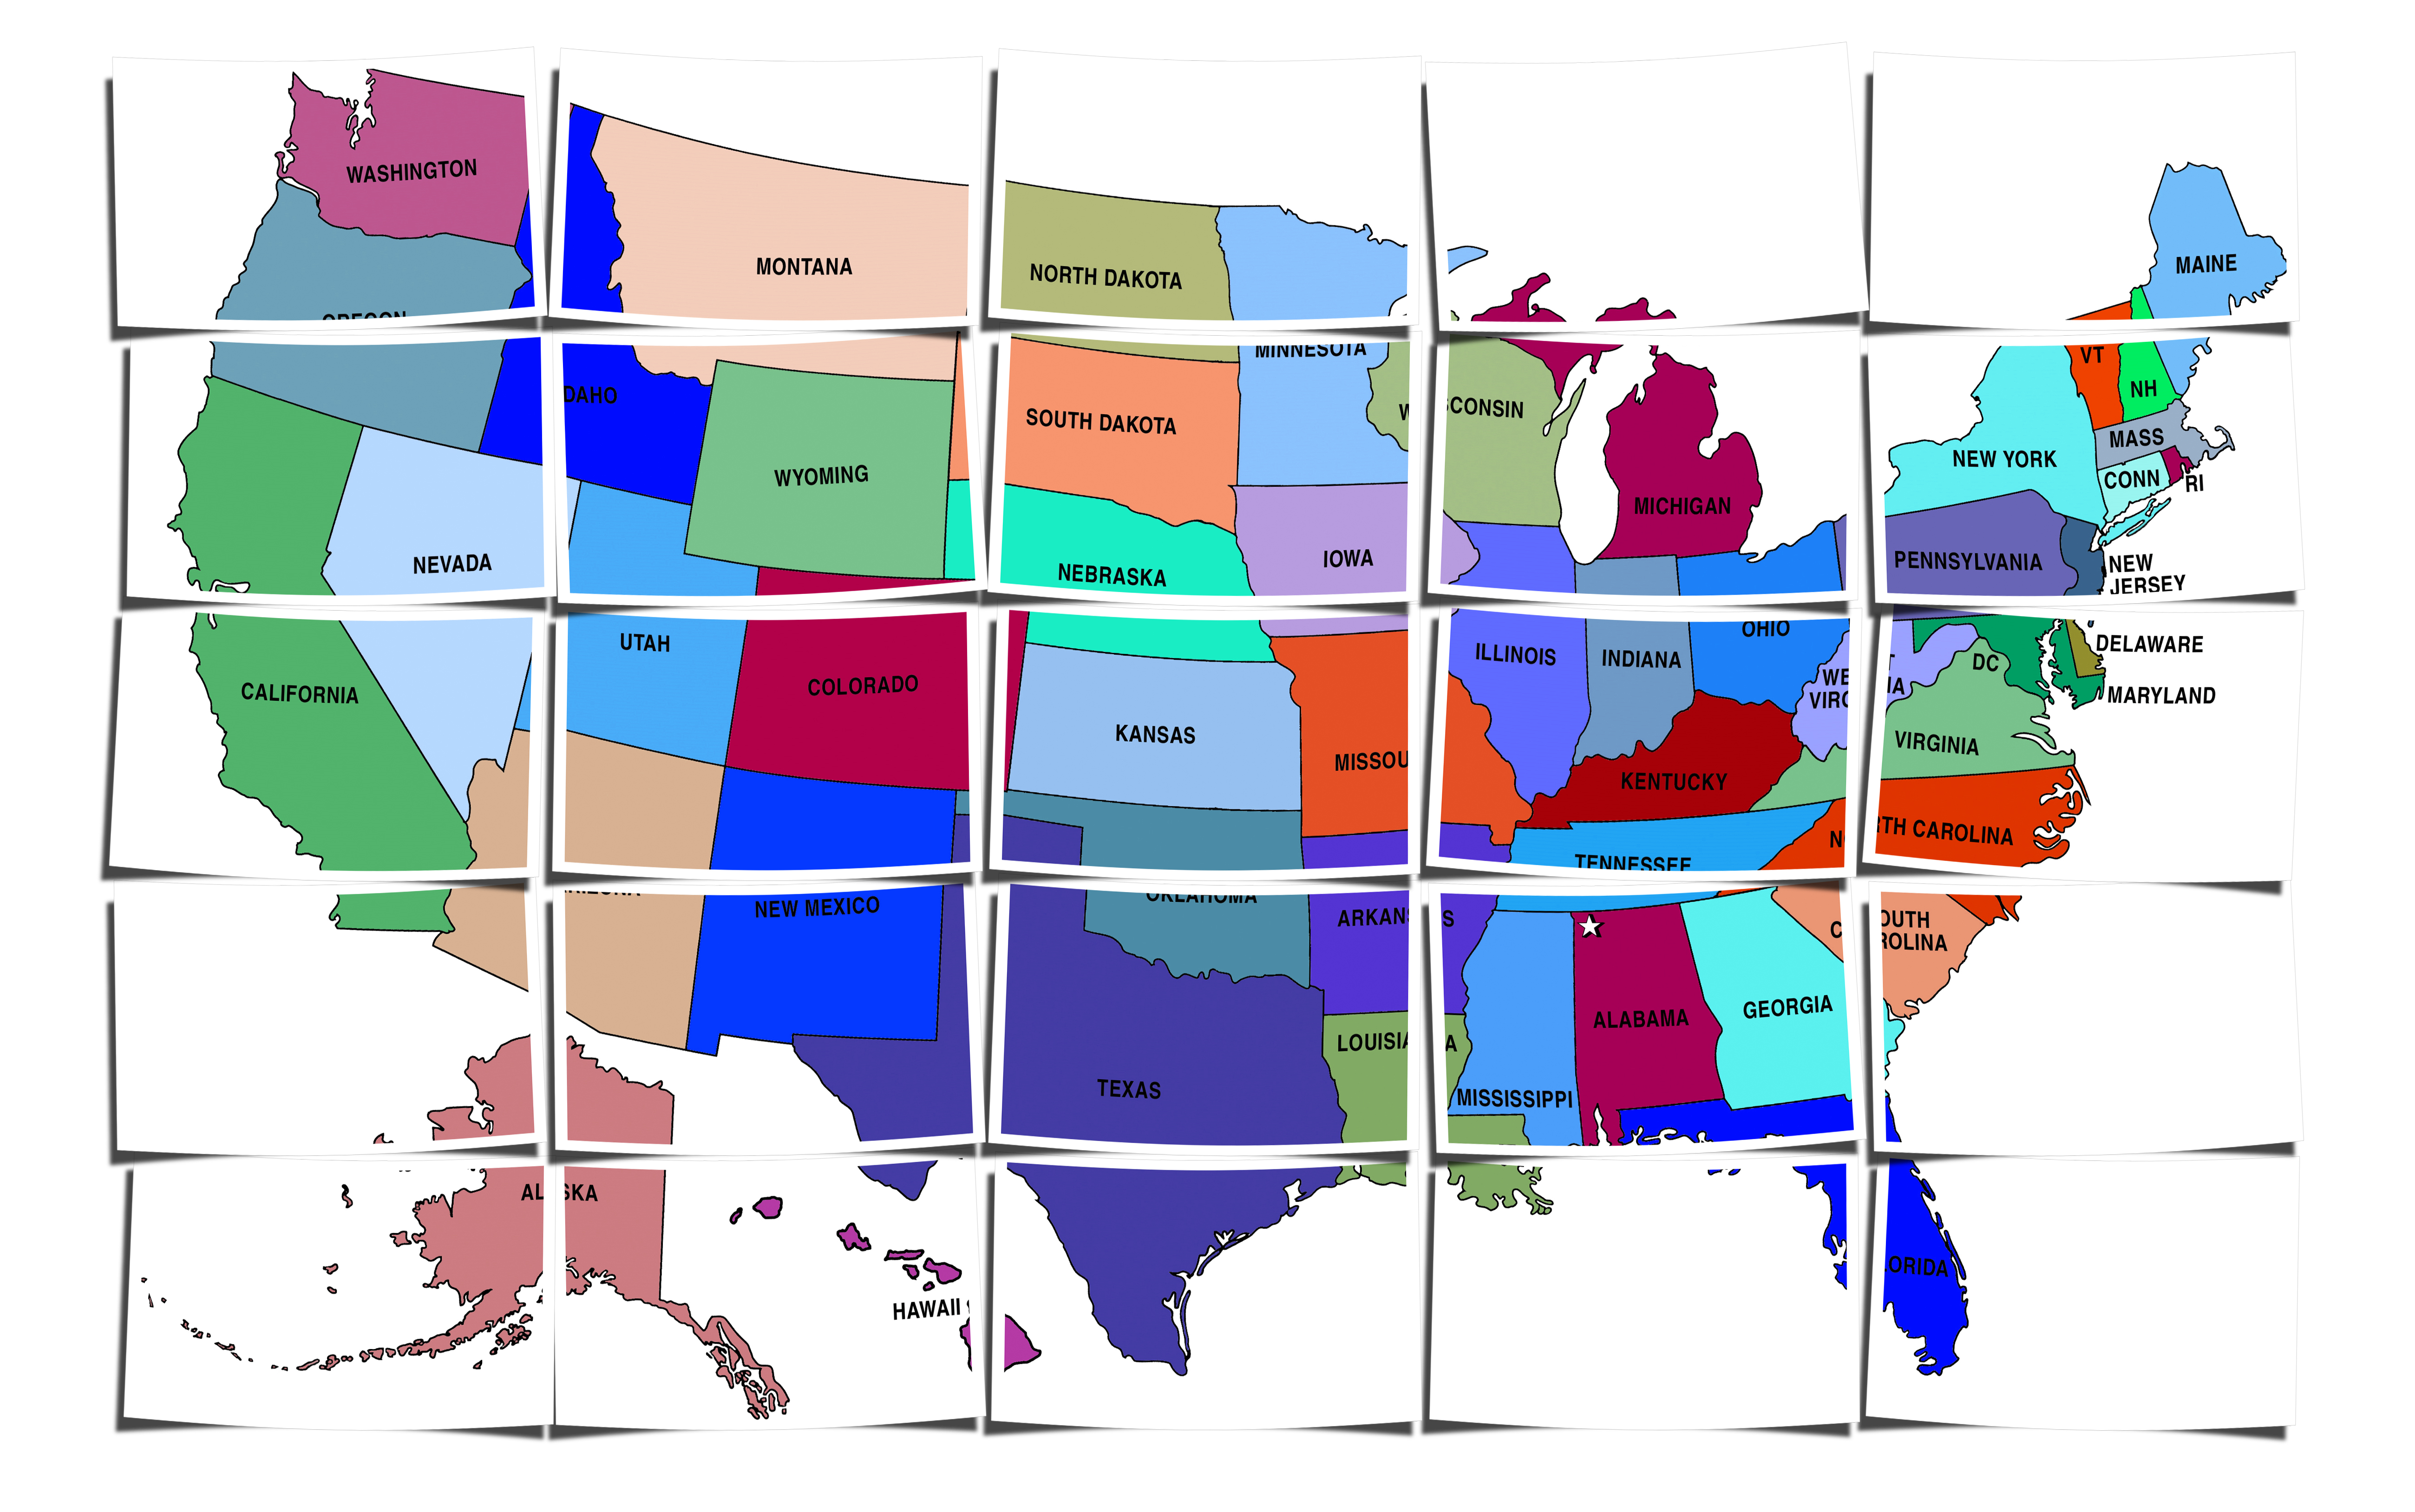 No State Income Tax States Map.9 States Without A State Income Tax Kwlms